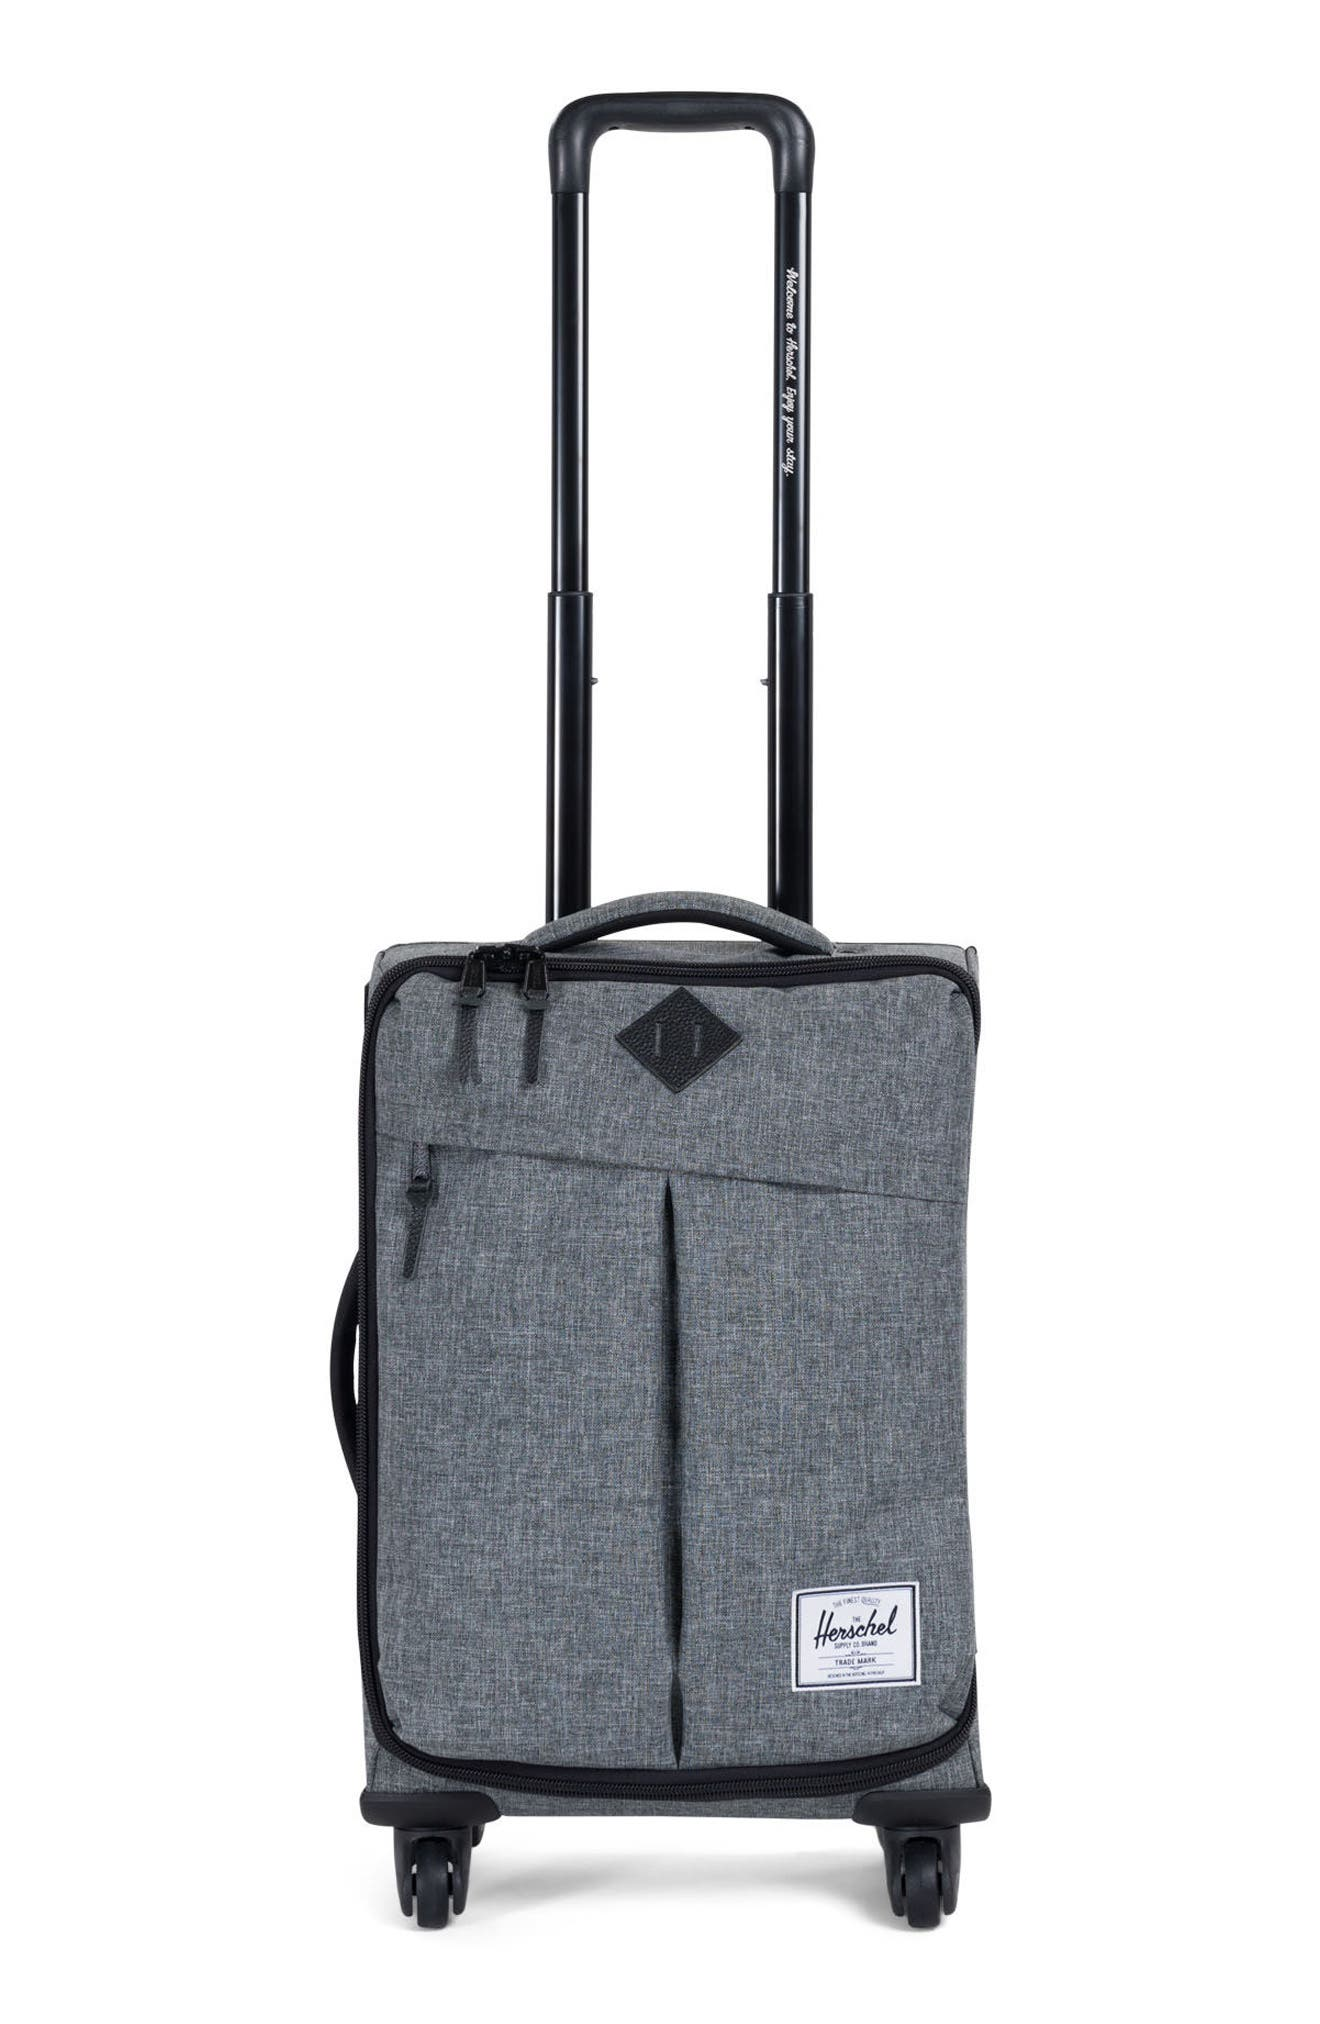 Herschel Supply Co. Highland 22-Inch Wheeled Carry-On